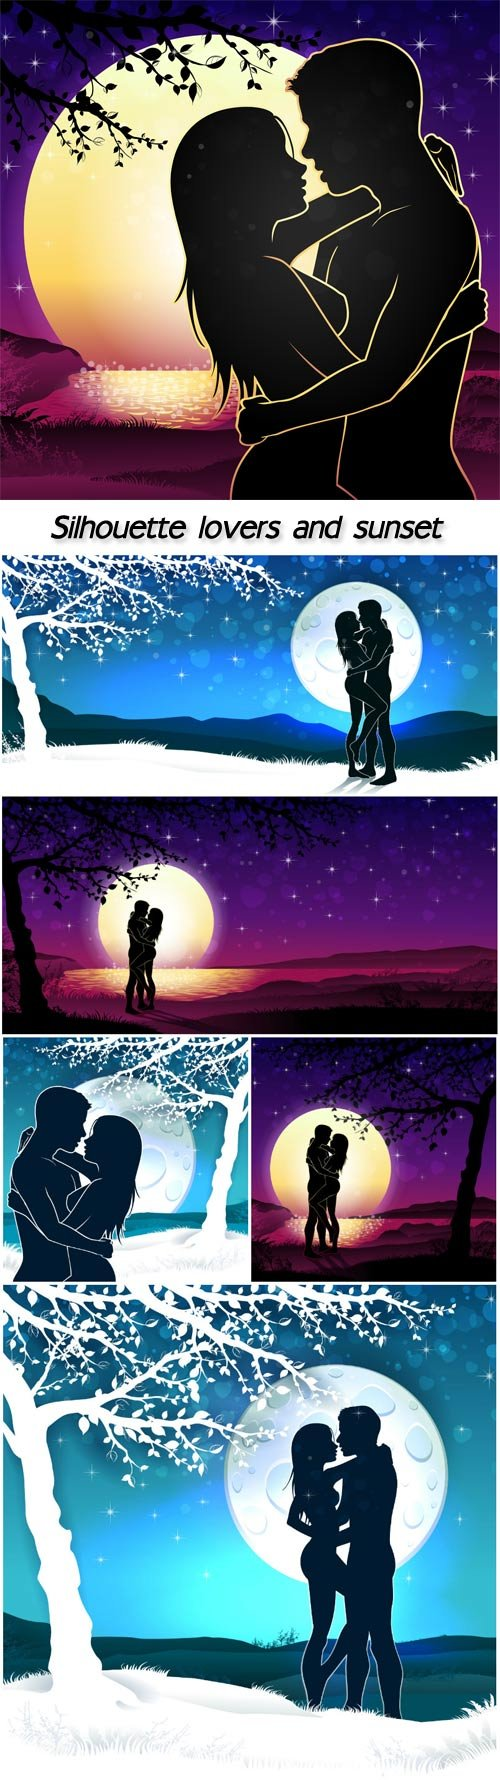 Silhouette lovers and sunset